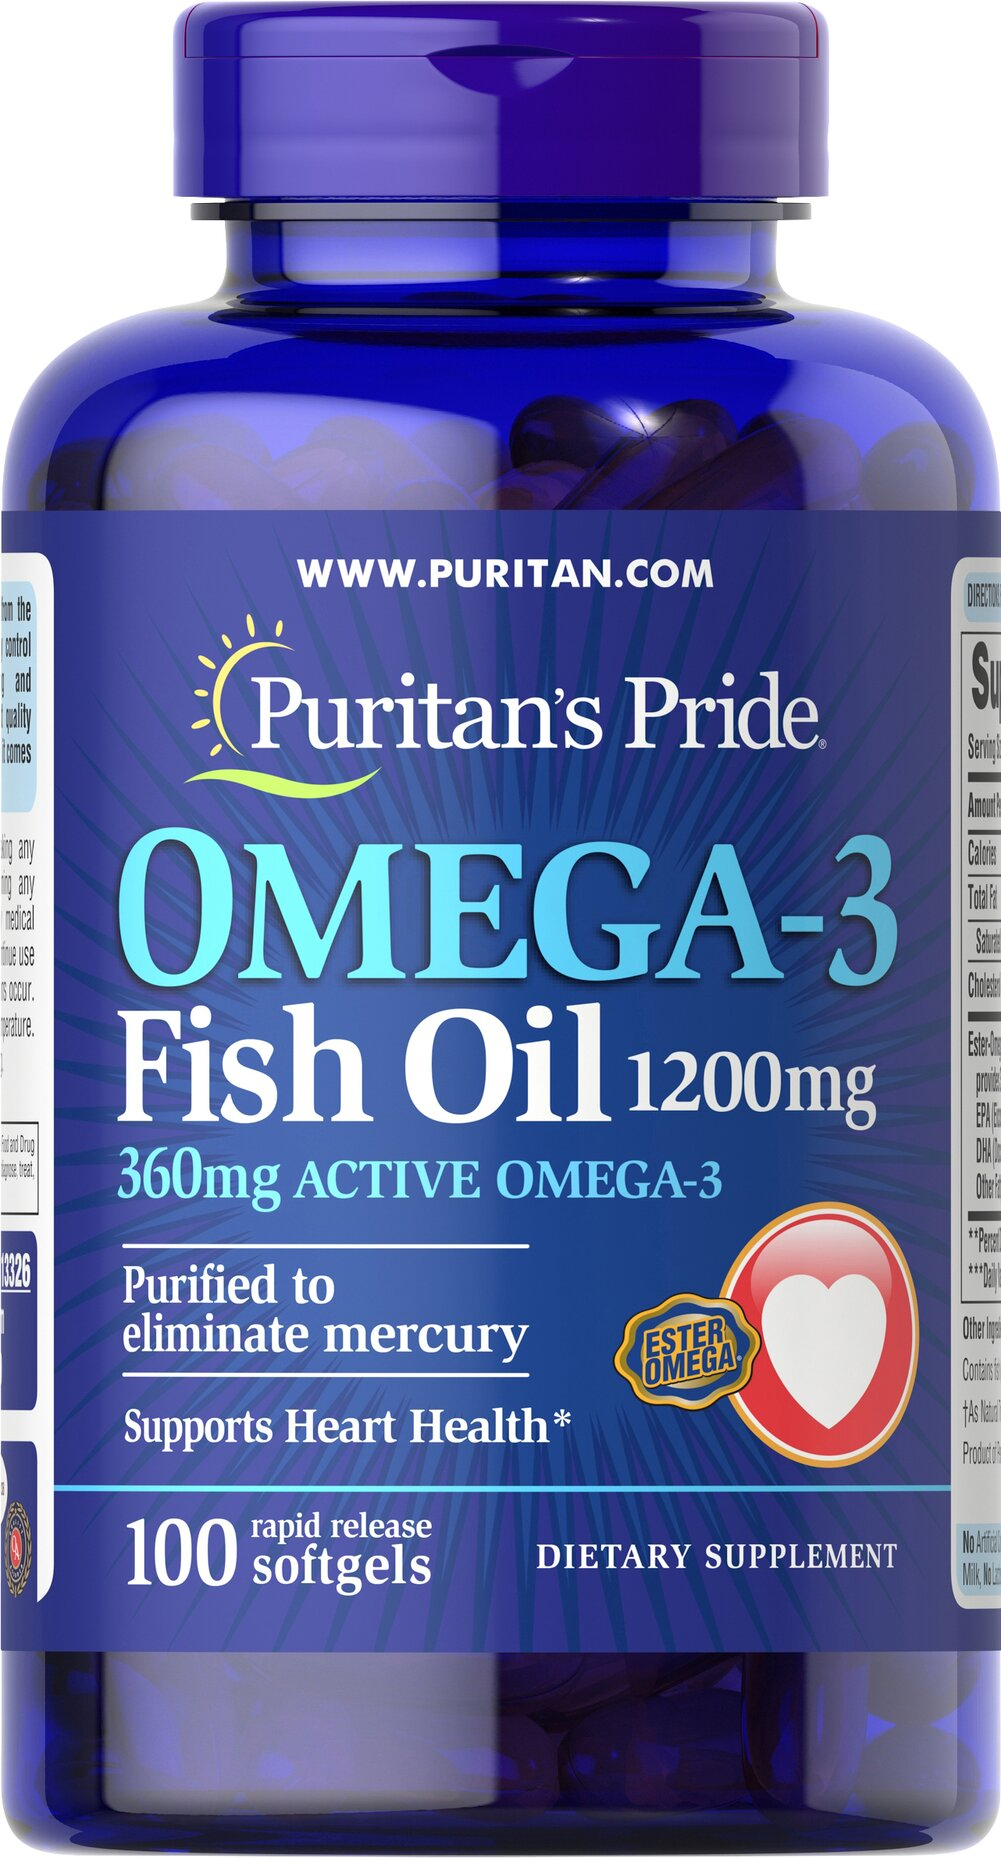 Omega-3 Fish Oil 1200 mg (360 mg Active Omega-3) <p><span></span></p>This Ester-Omega® Fish Oil provides 360mg of total omega-3 fatty acids, comprising of EPA, DHA and other fatty acids. EPA and DHA fatty acids support heart health.** Purified to eliminate mercury. Rapid release softgels. 100 Softgels 1200 mg $11.99